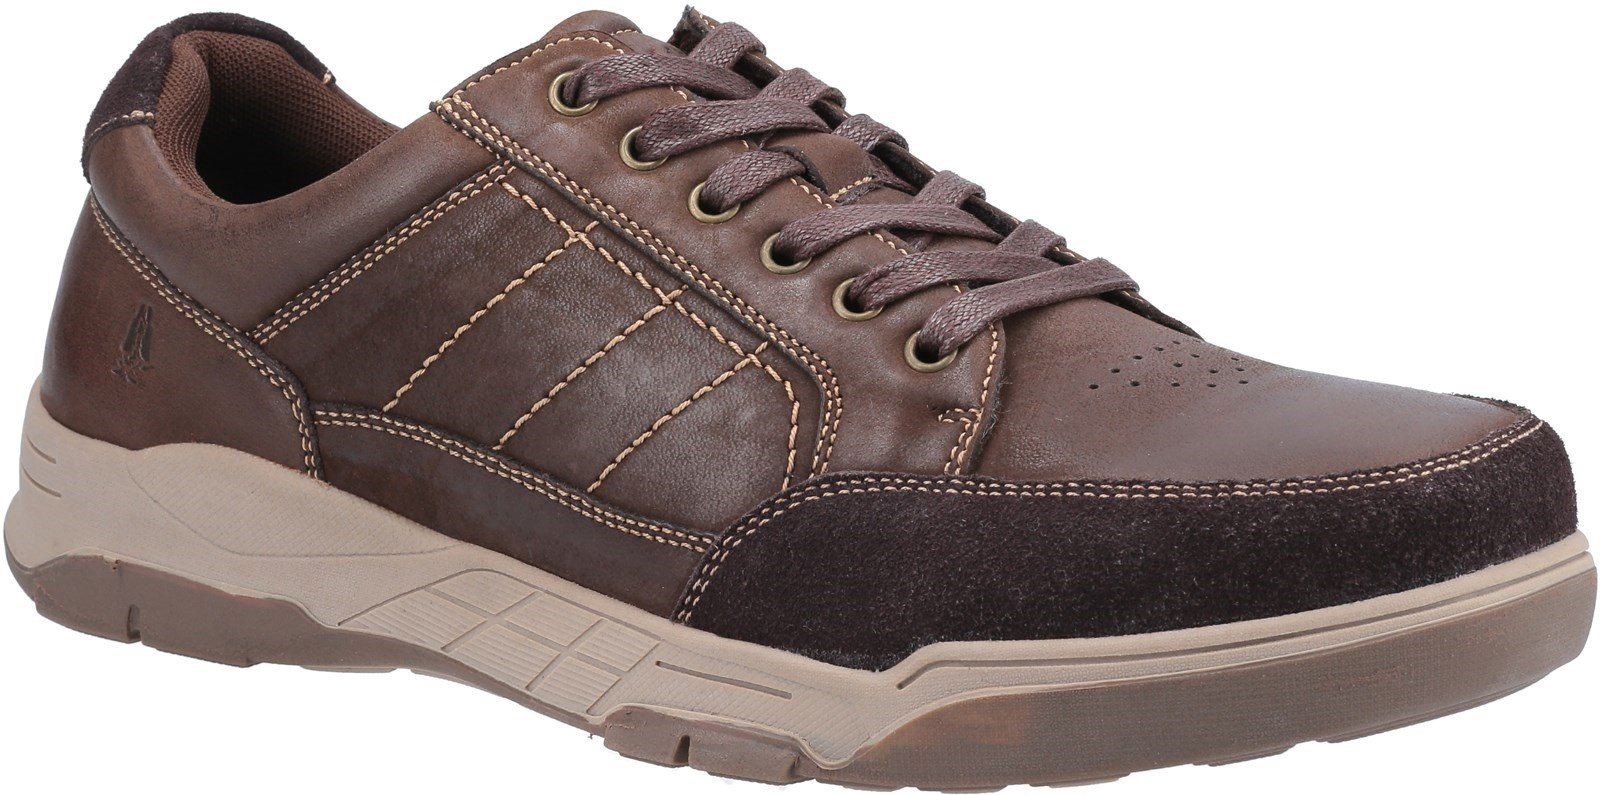 Hush Puppies Men's Finley Lace Trainer Various Colours 32011 - Coffee 7